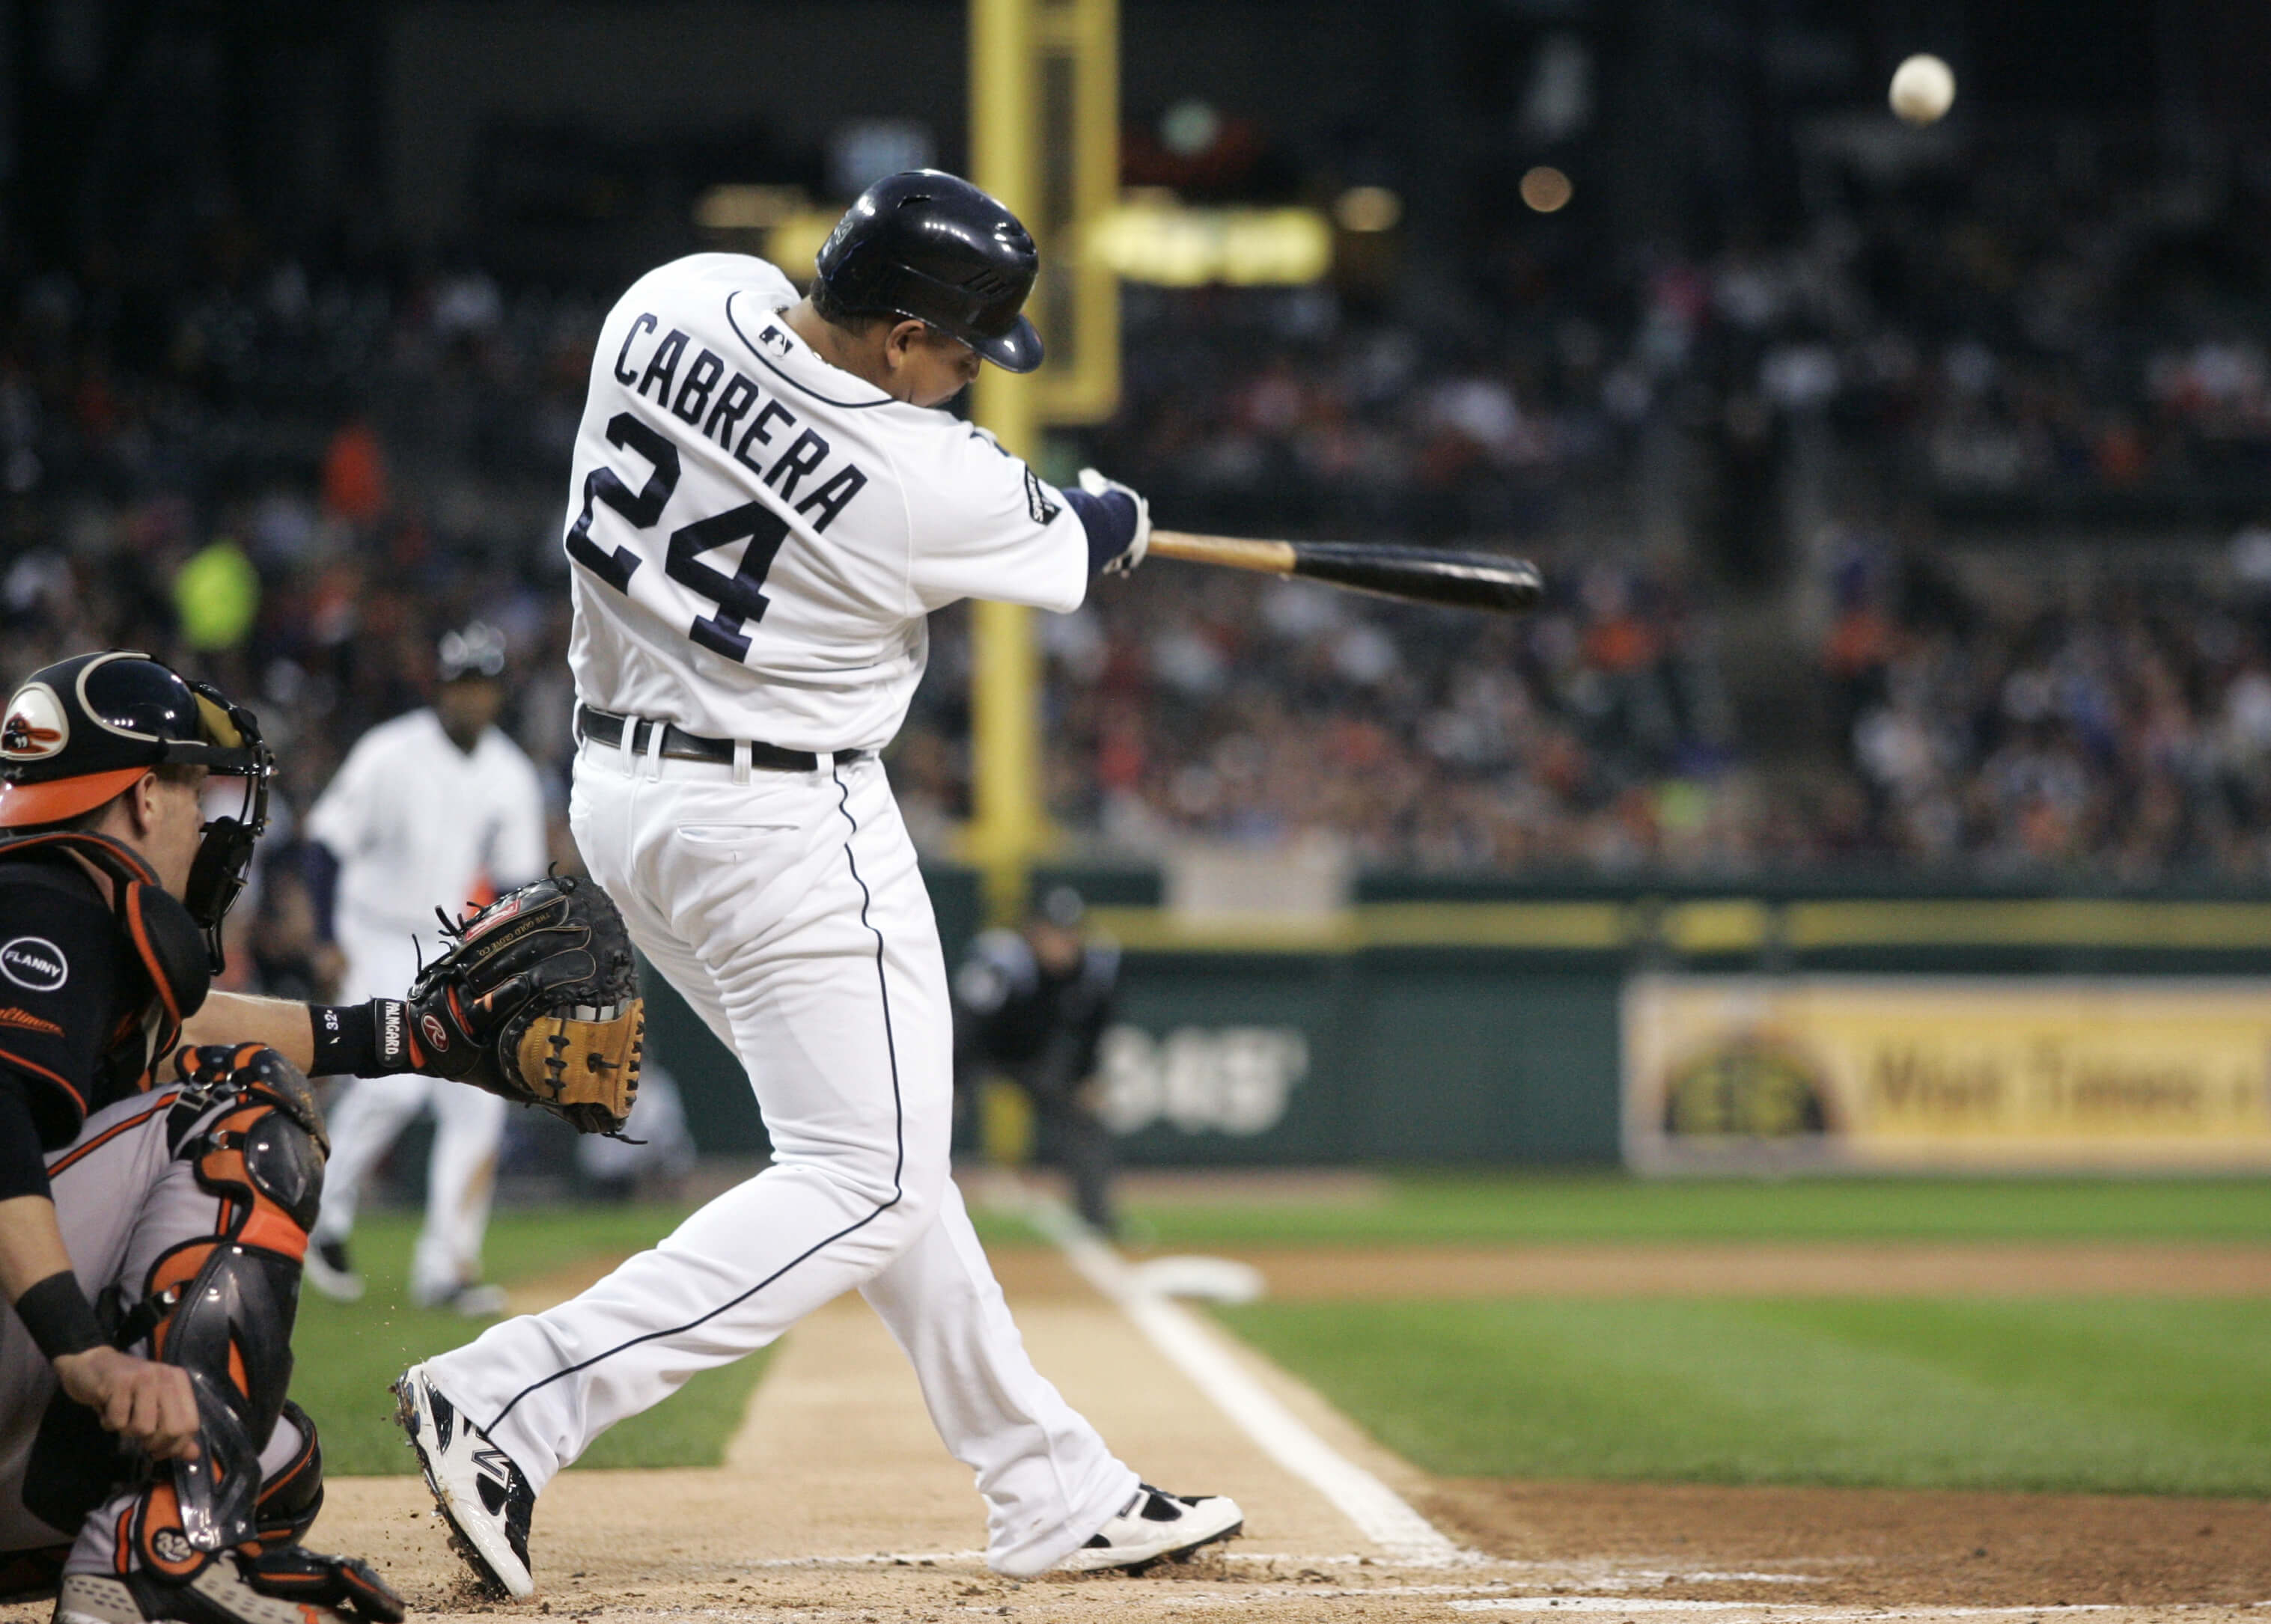 http://thesportsfanjournal.com/wp-content/uploads/2012/09/miguel-cabrera107435771.jpg